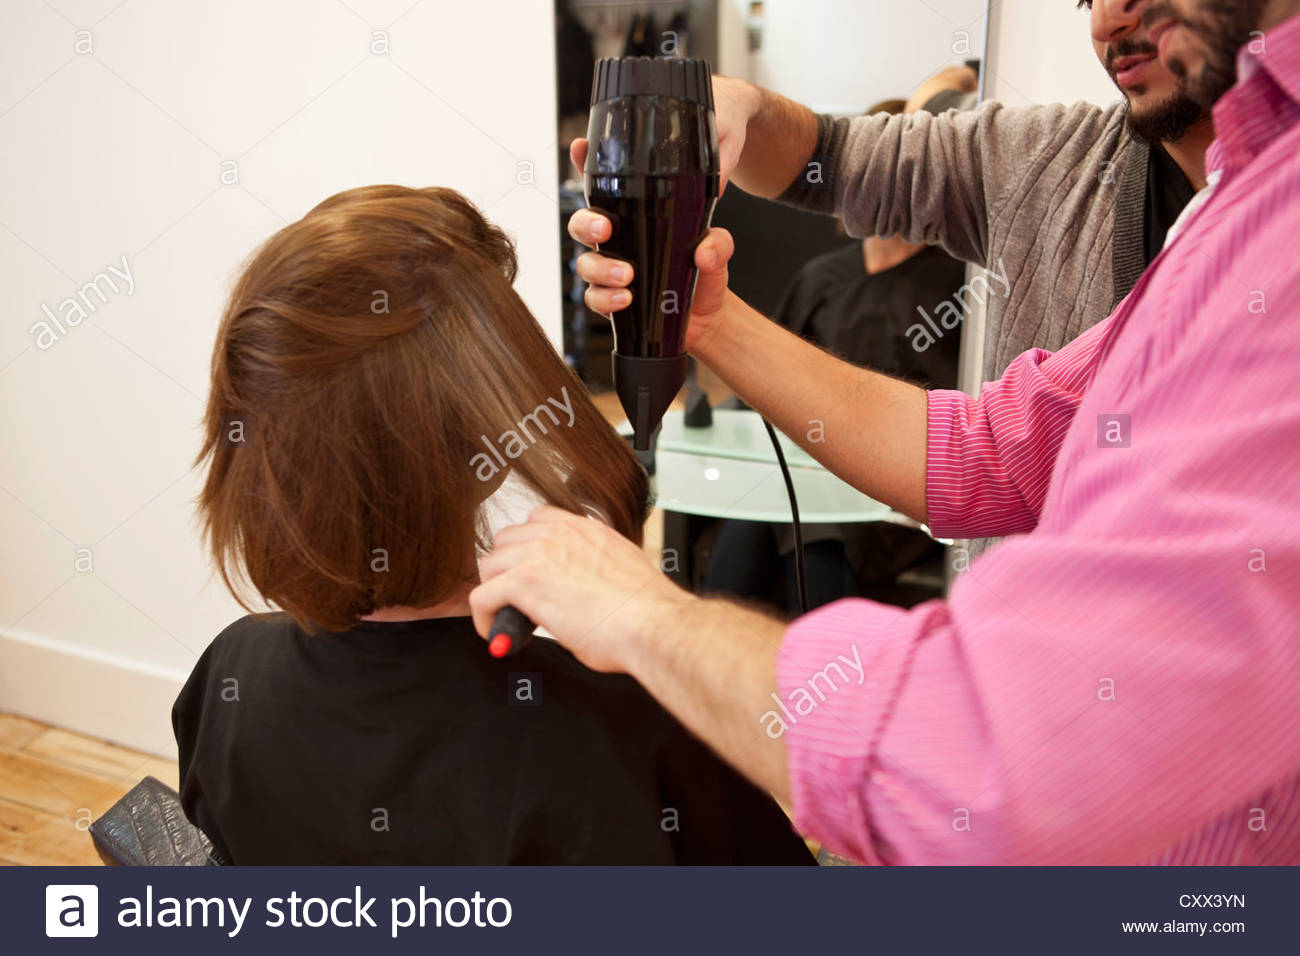 A female client having a blow dry in a hairdressing salon - Stock Image